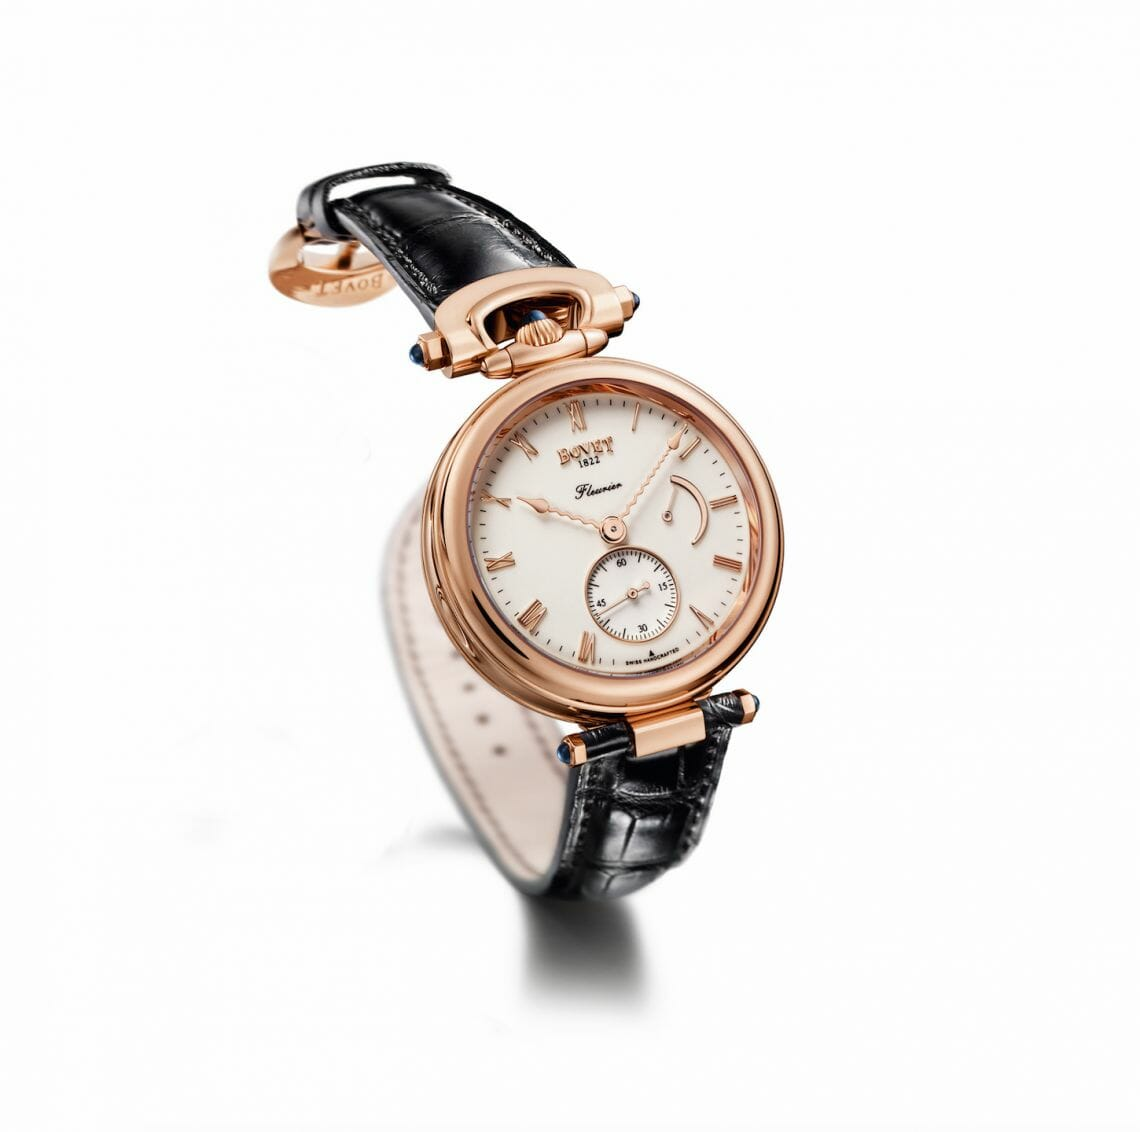 BOVET Amadeo Fleurier The Beauty and Style of BOVET Convertible Amadeo Timepieces - EAT LOVE SAVOR International Luxury Lifestyle Magazine